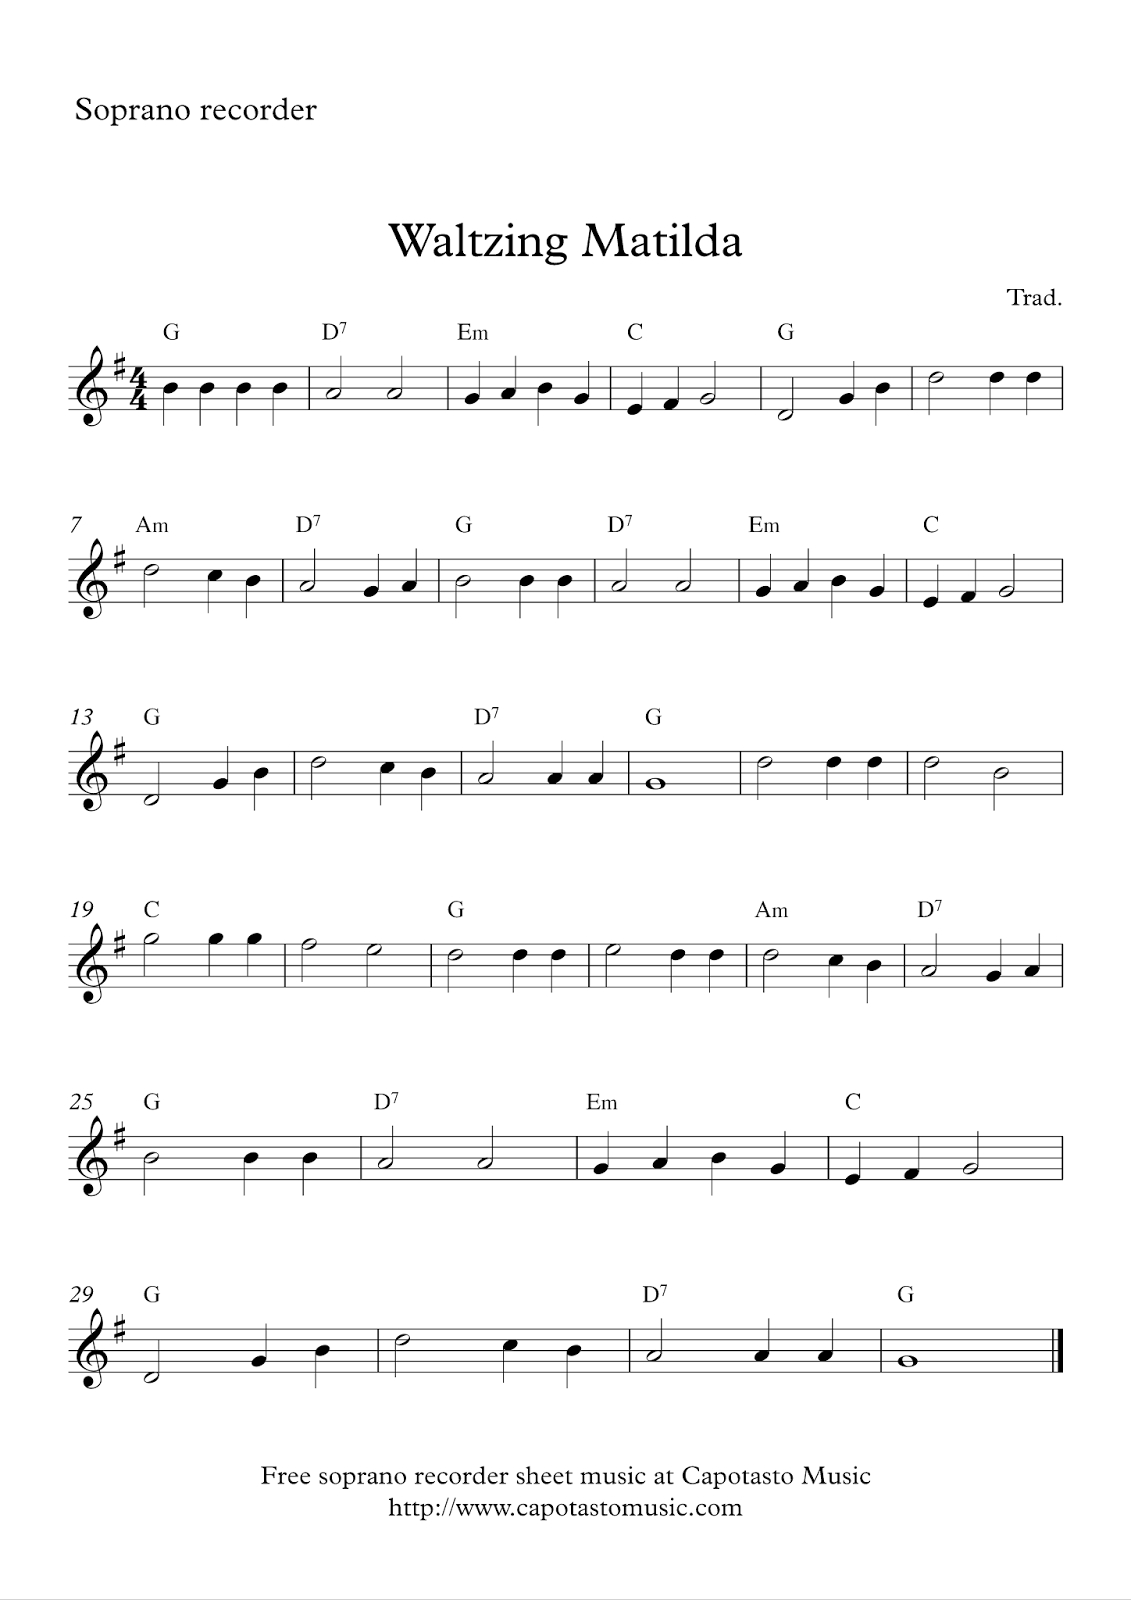 Free Easy Soprano Recorder Sheet Music, Waltzing Matilda - Free Printable Recorder Sheet Music For Beginners